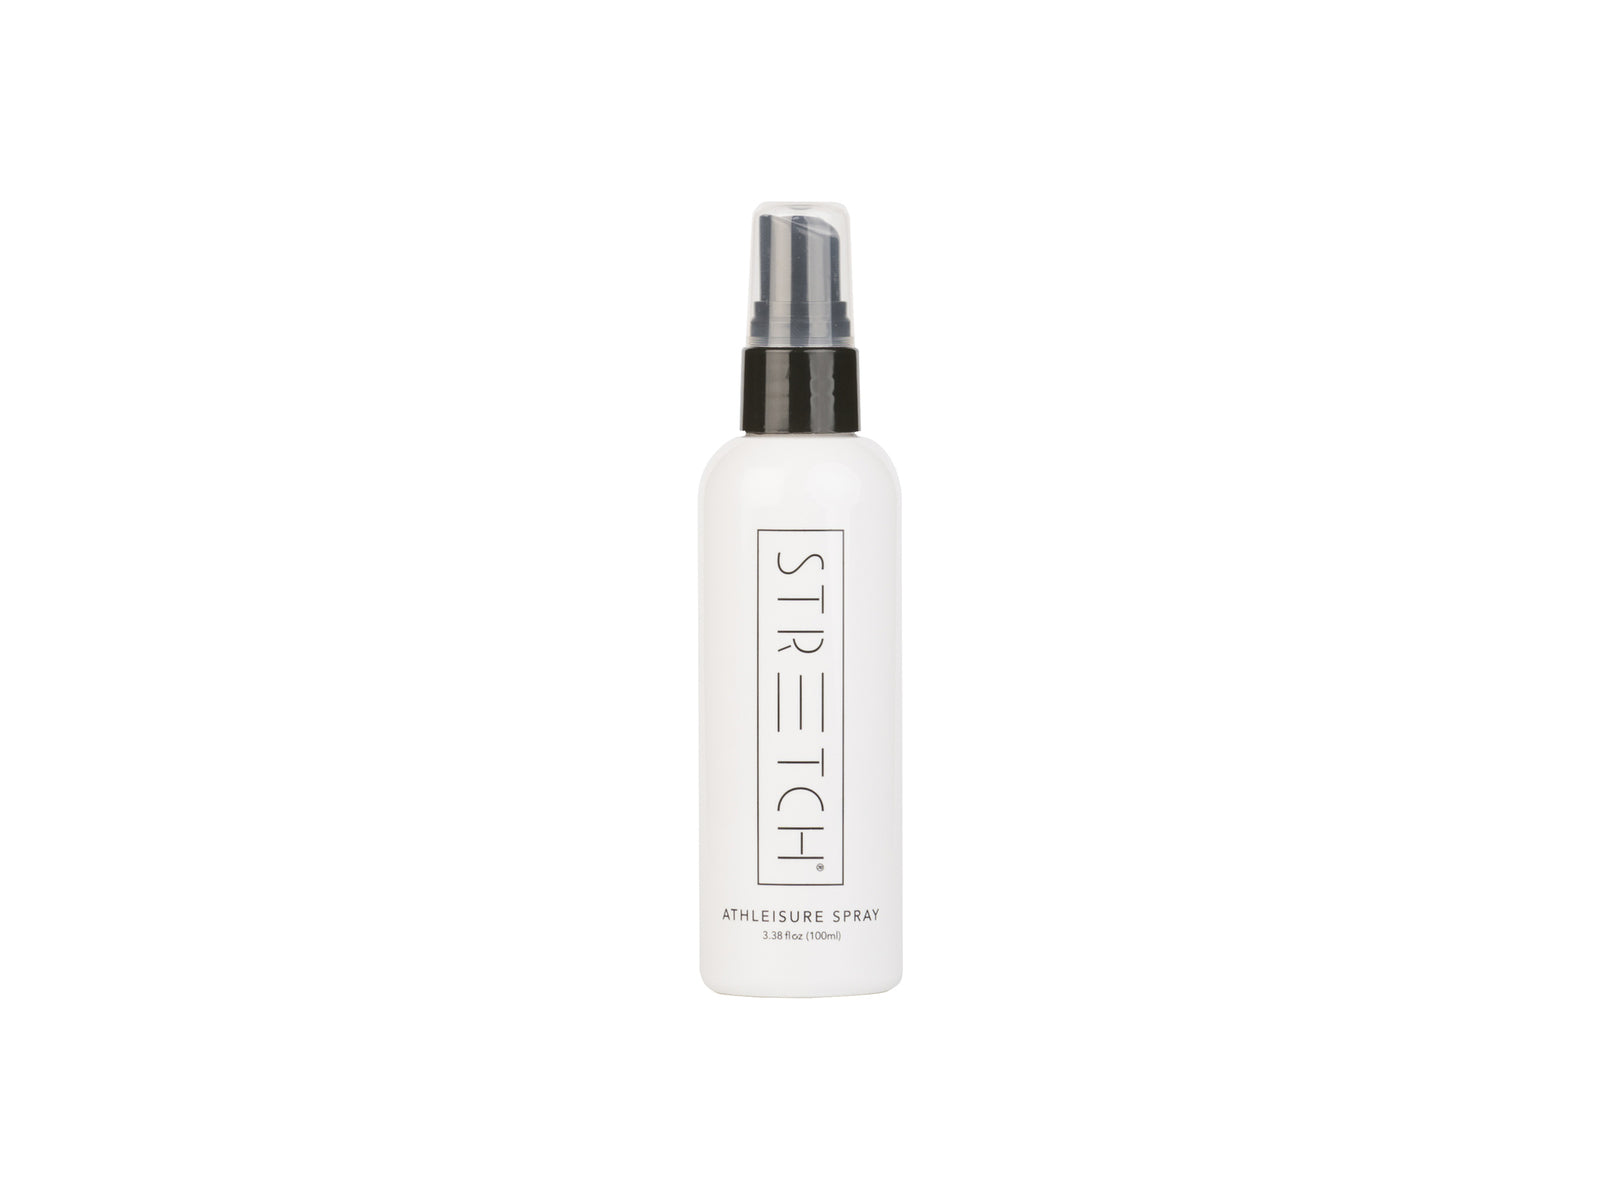 STRETCH® Athleisure Spray - Travel Size (3.38oz)